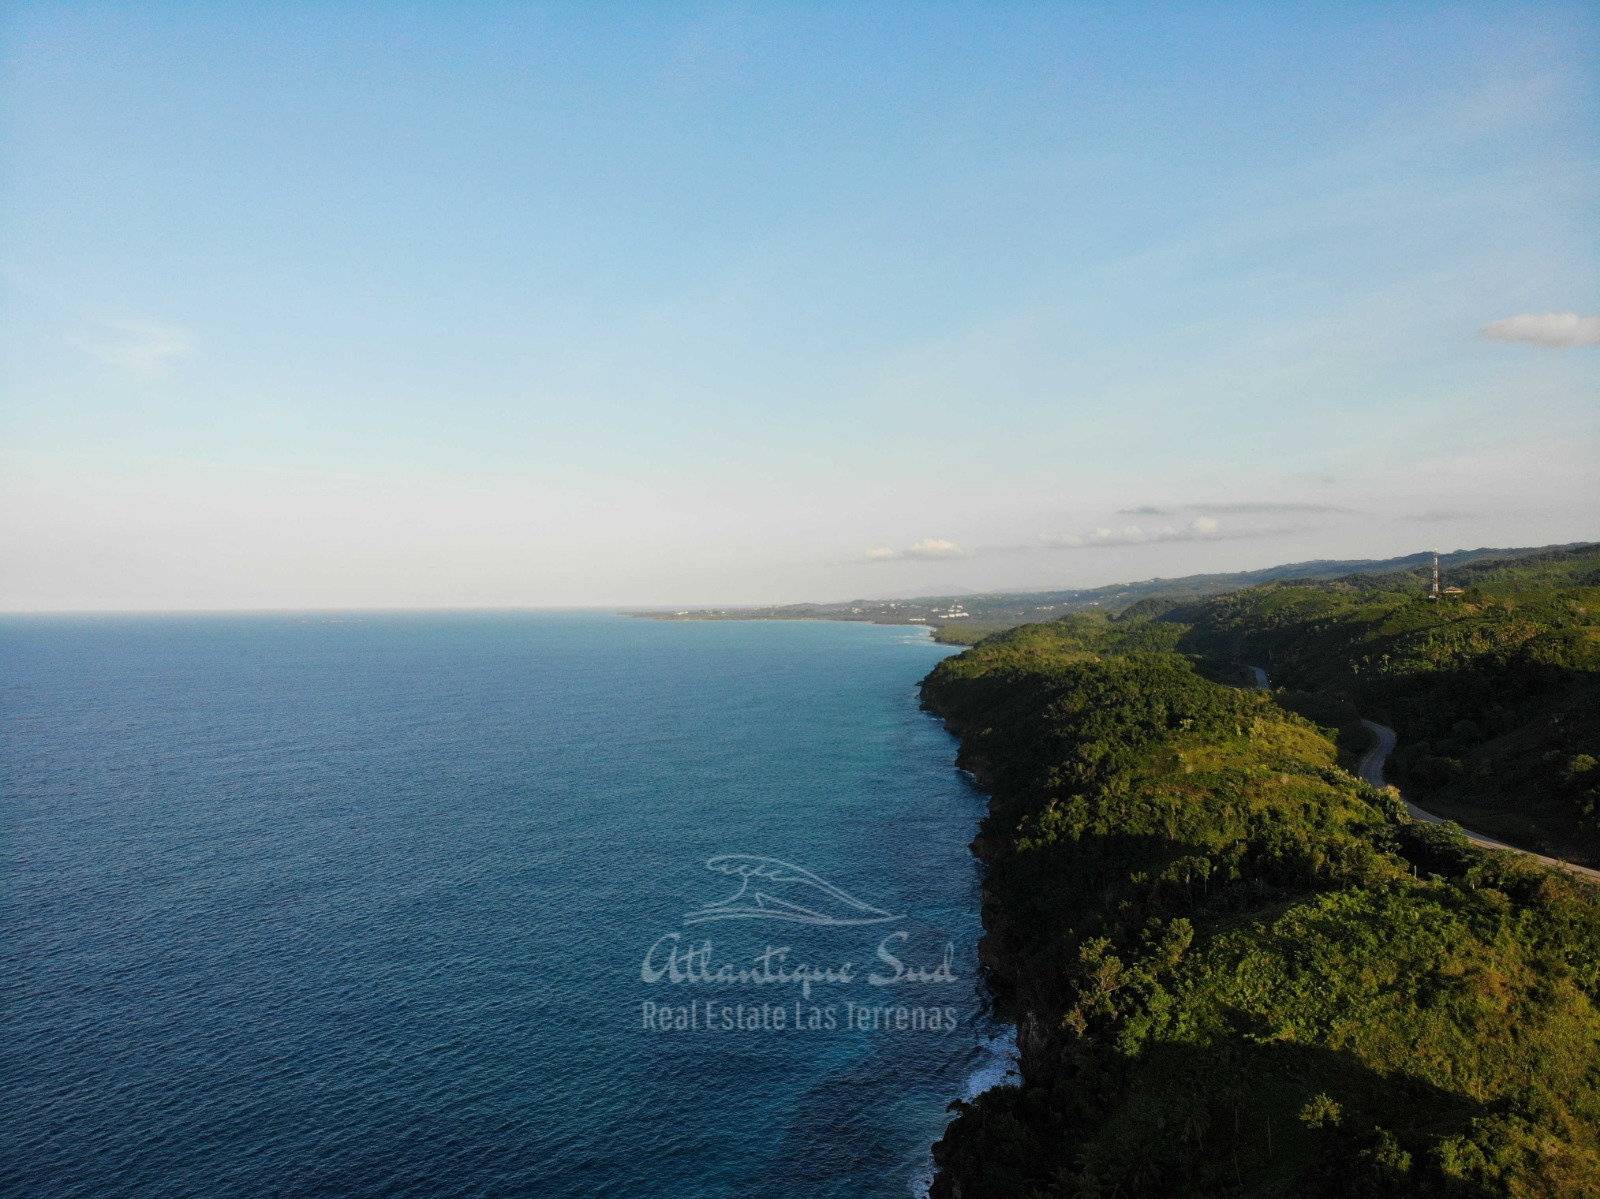 Cliff Land for Sale Las Terrenas 8.jpeg